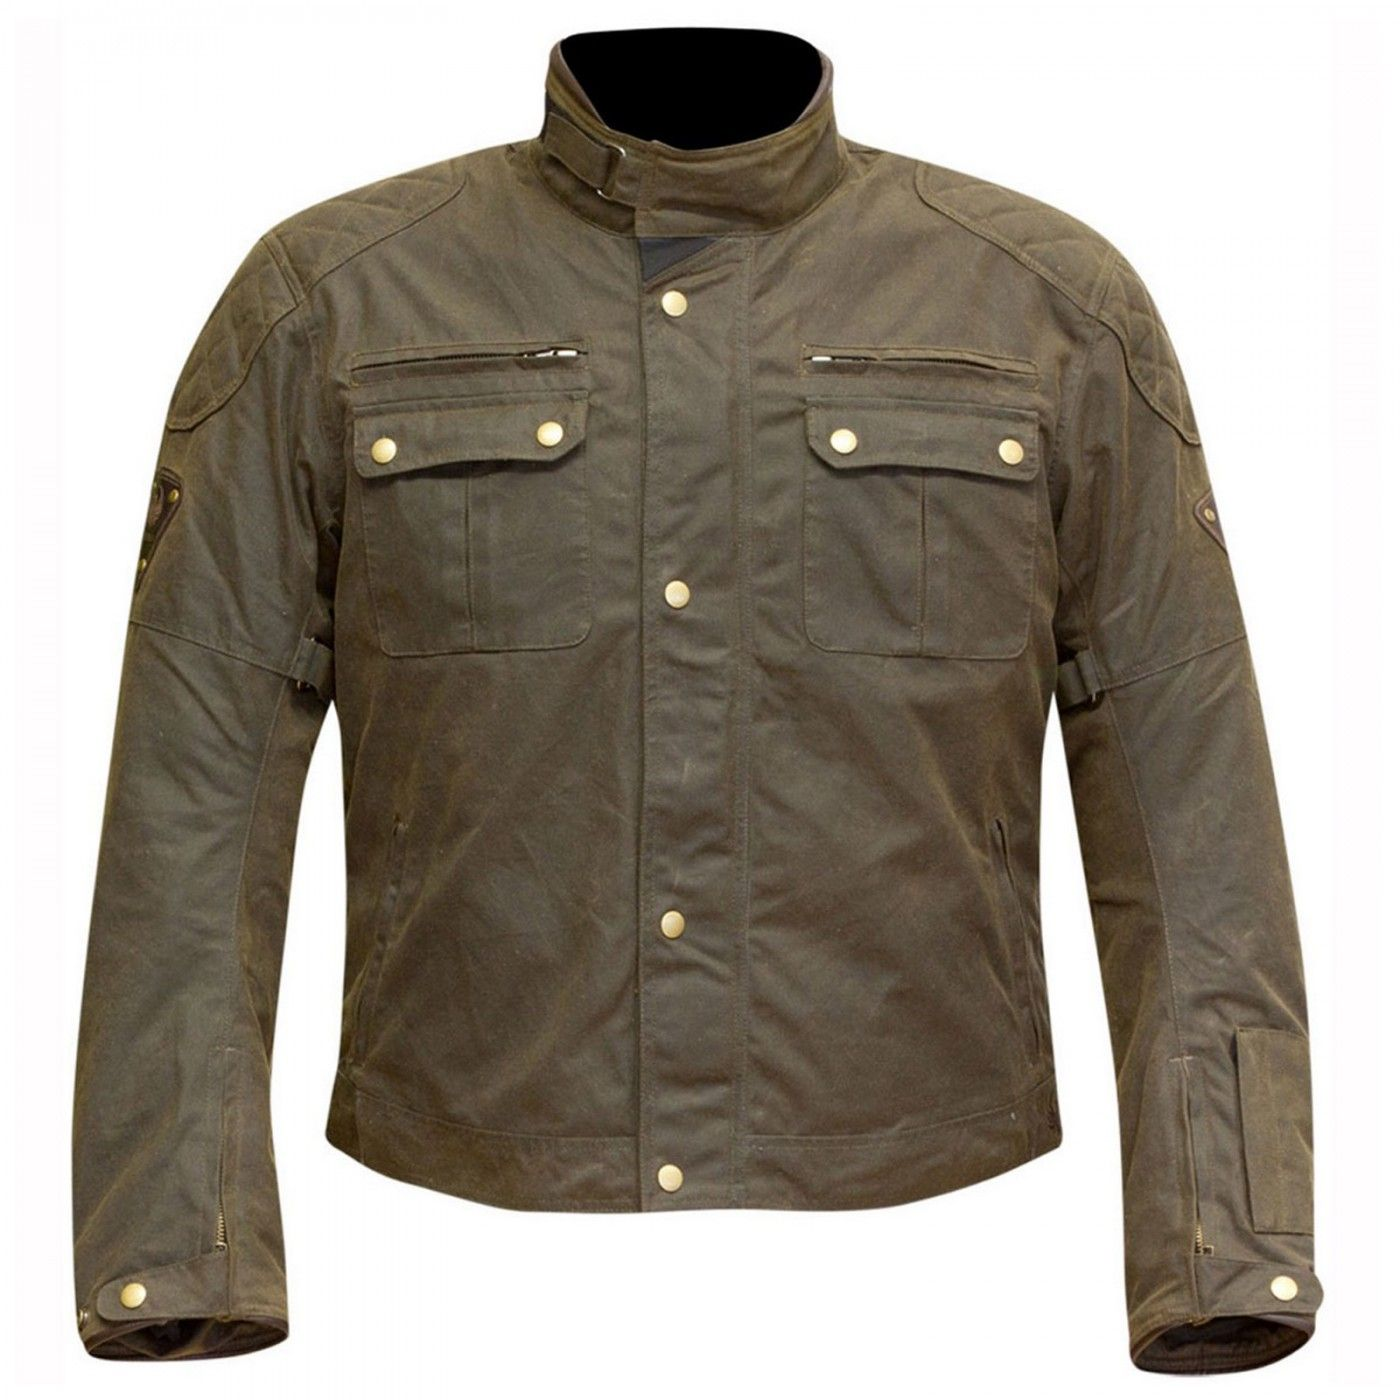 1adb21662f5 Merlin - Sandon Wax Olive - Le shop 4h10 Motorcycle Outfit